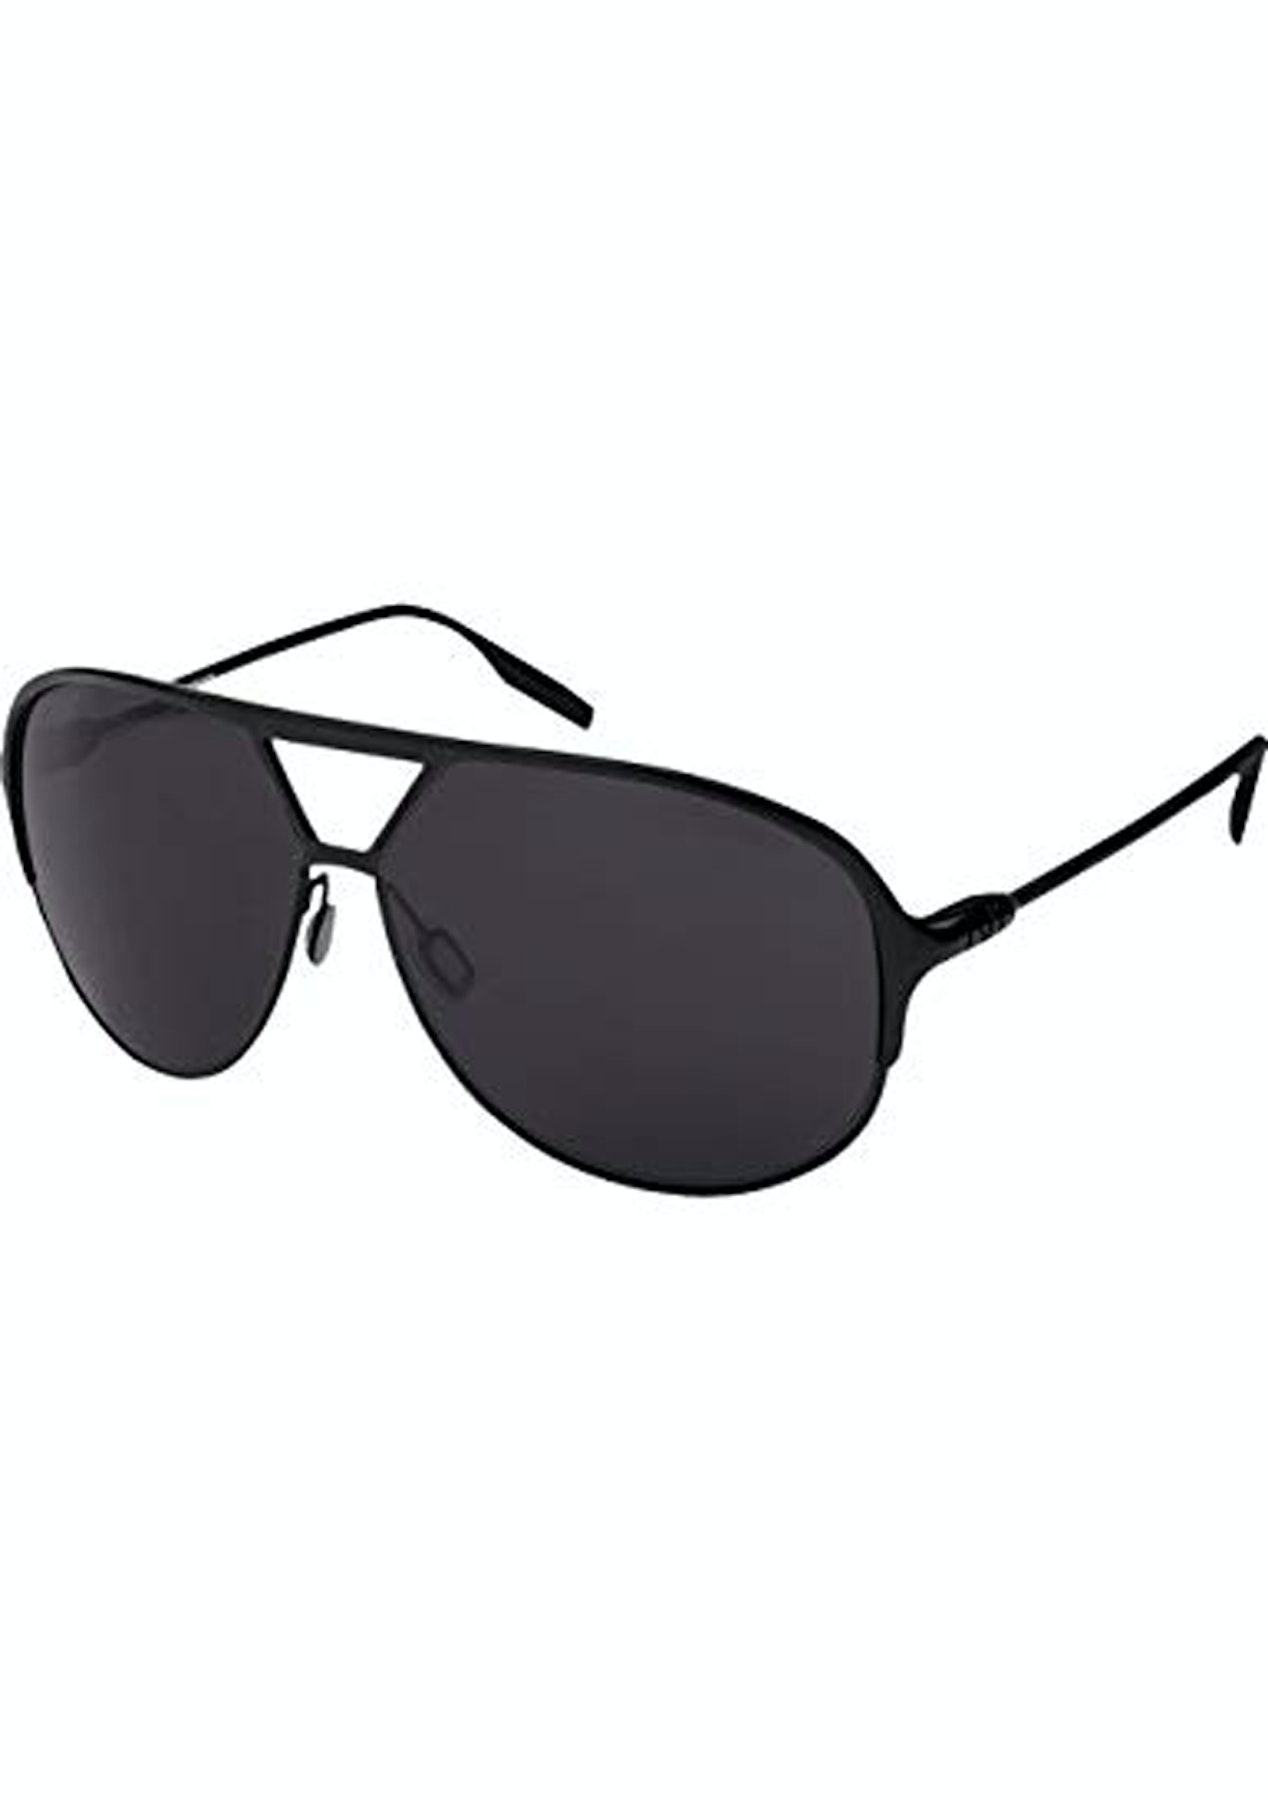 eed5a9443d1 IVI Division Sunglasses - Polished Black Grey - Sunglasses Super Sale From   9.95 - Onceit